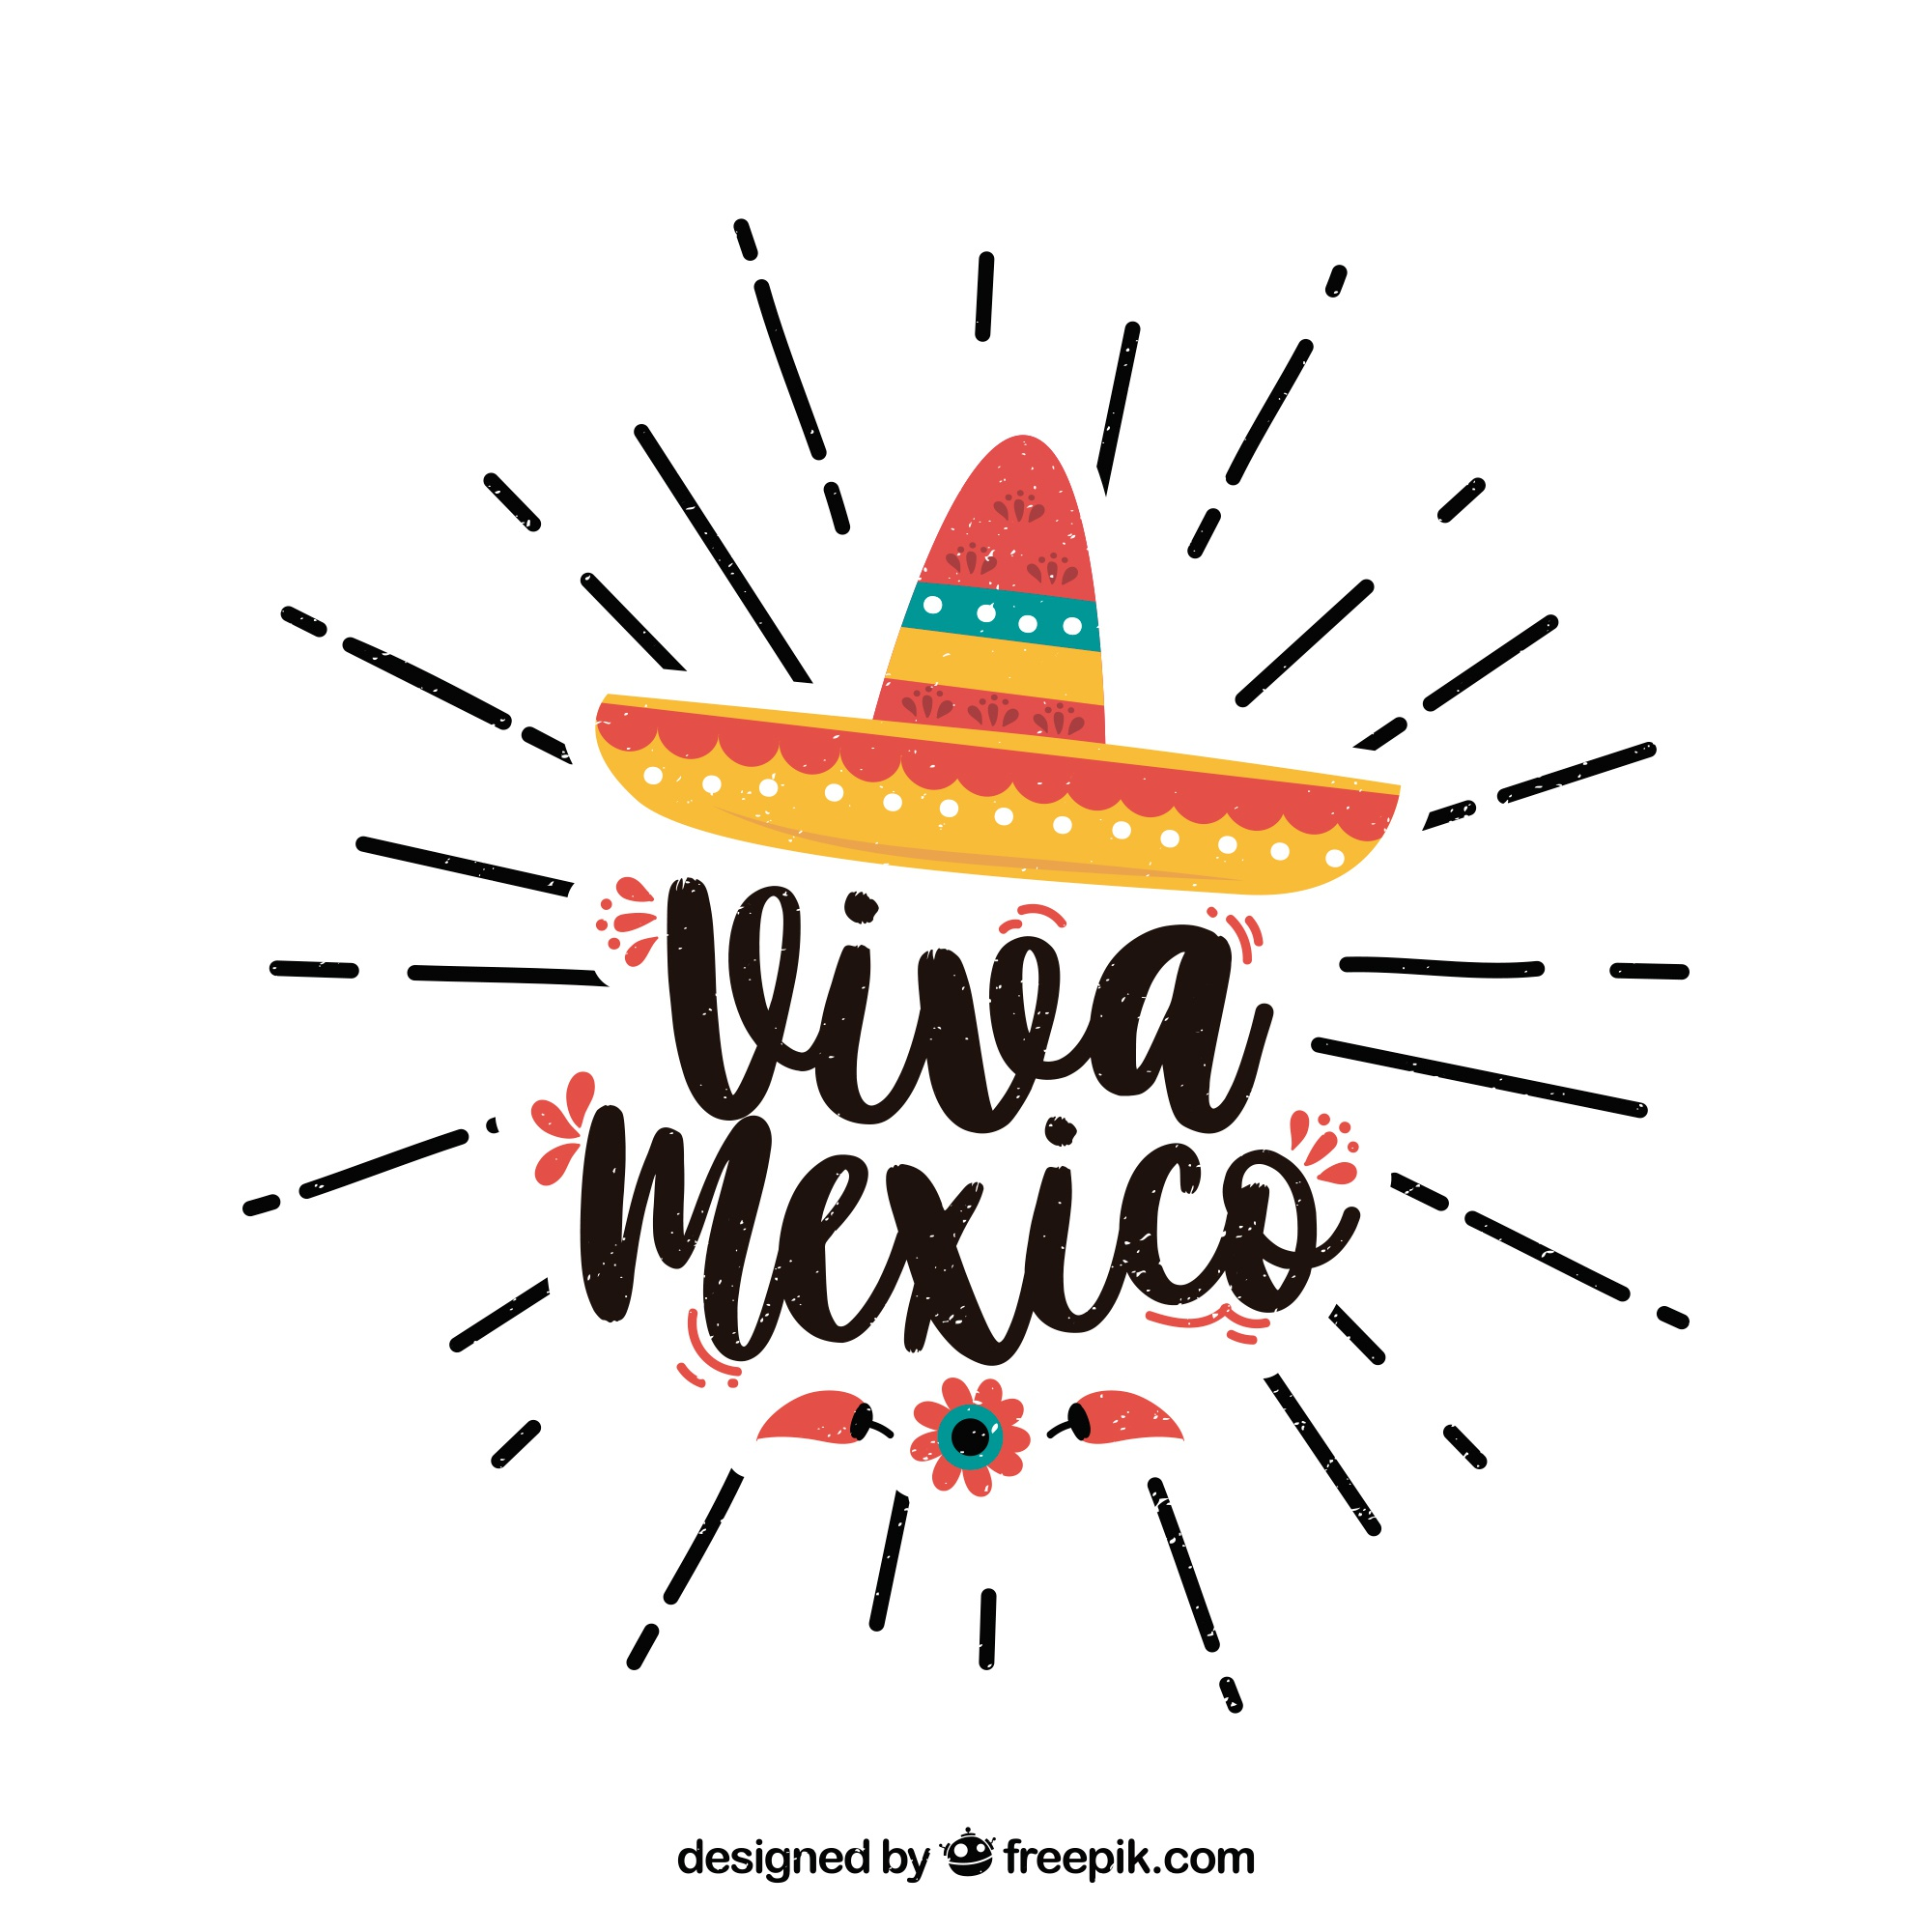 Viva mexico lettering background with hat